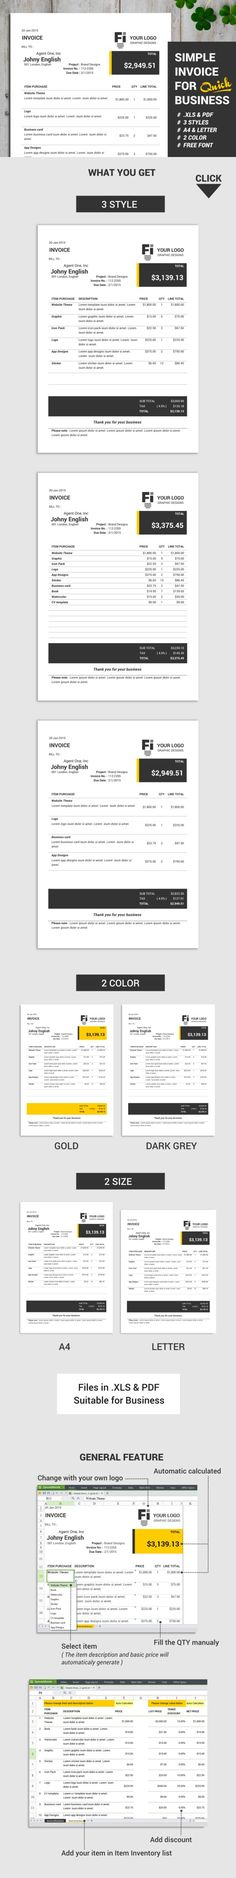 Invoice Template Invoice template and Templates - create your own invoices